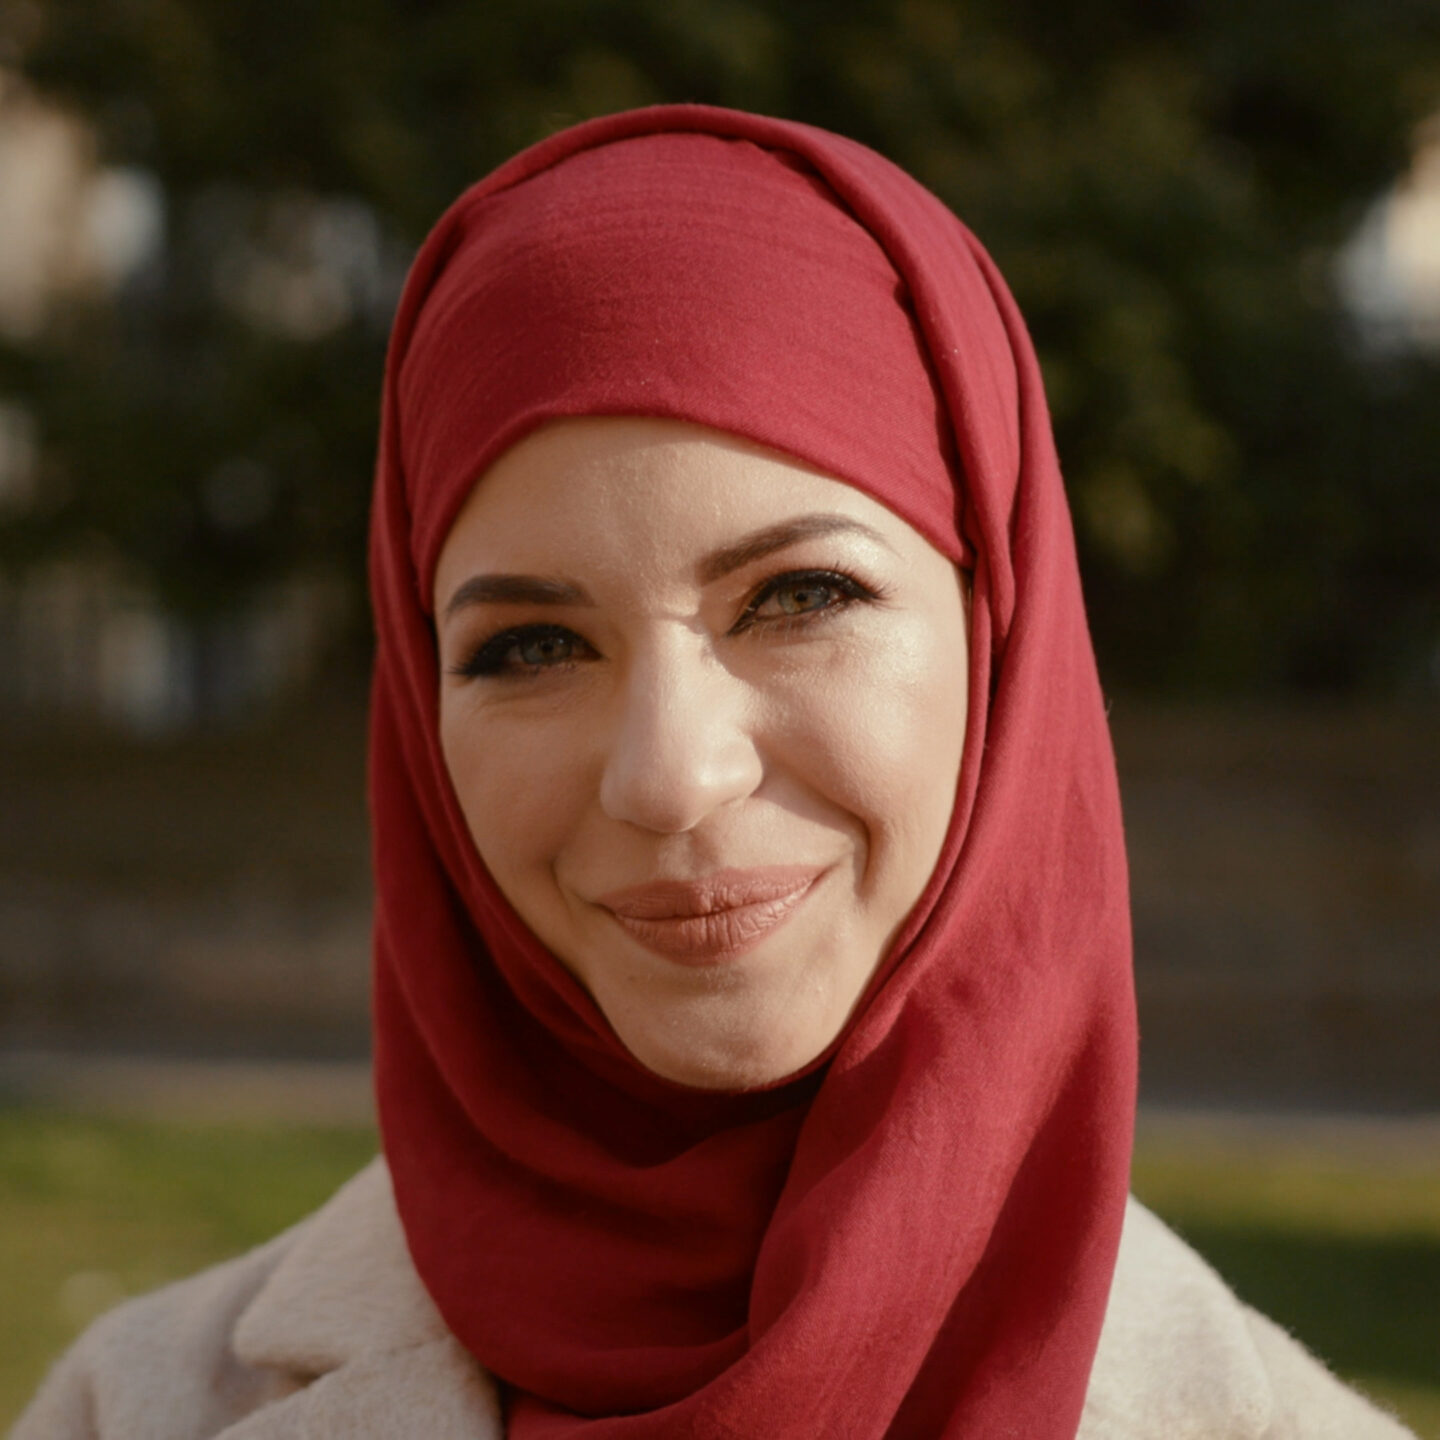 Person wearing a red hijab smiling.